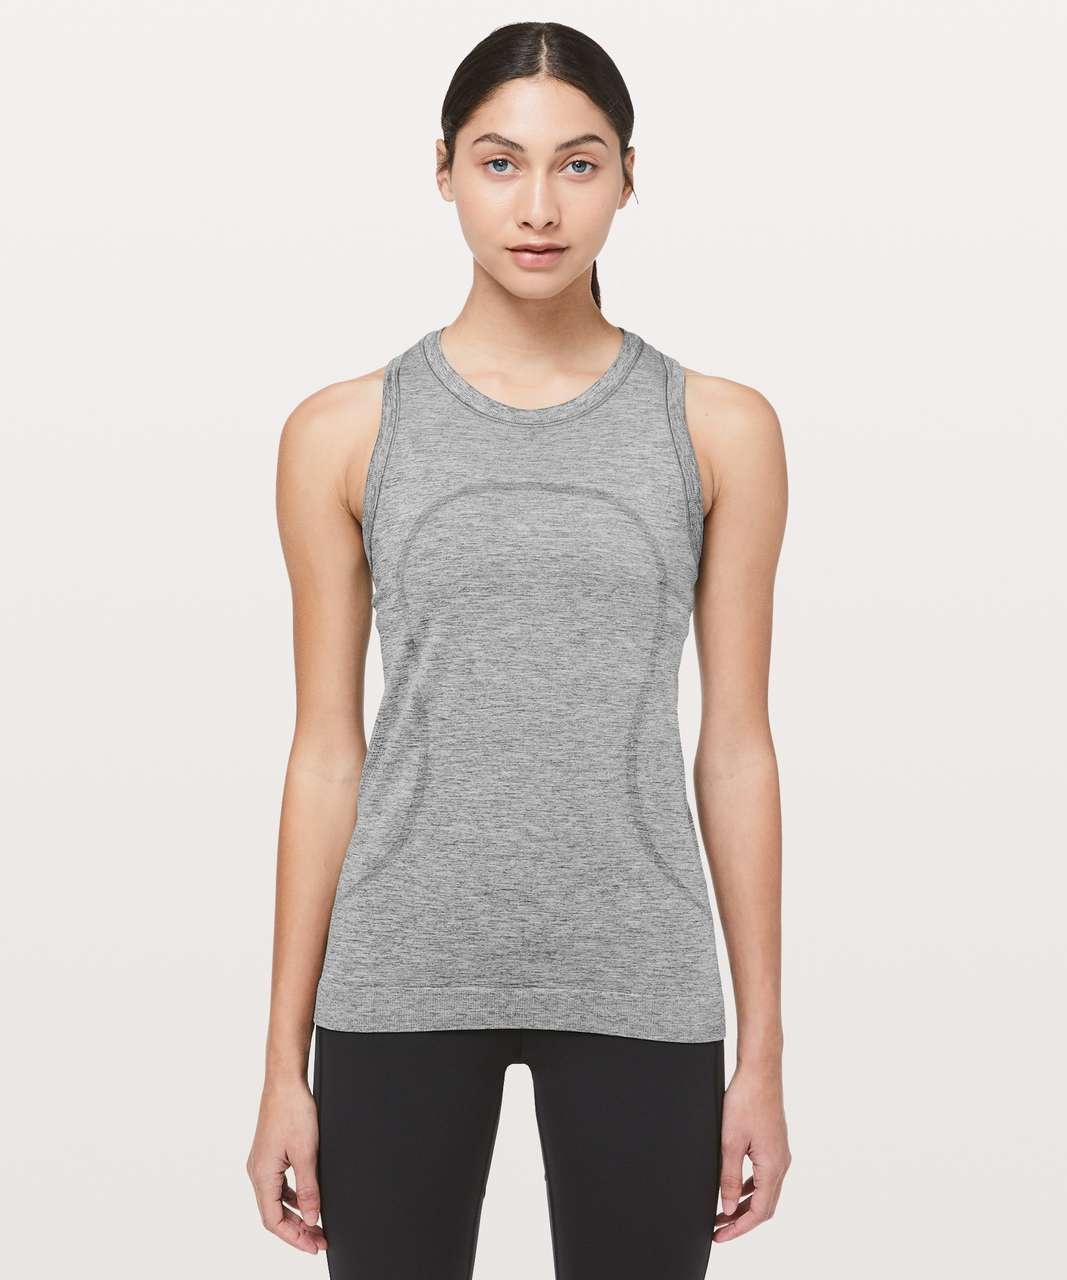 Lululemon Swiftly Breeze Tank - Slate / White